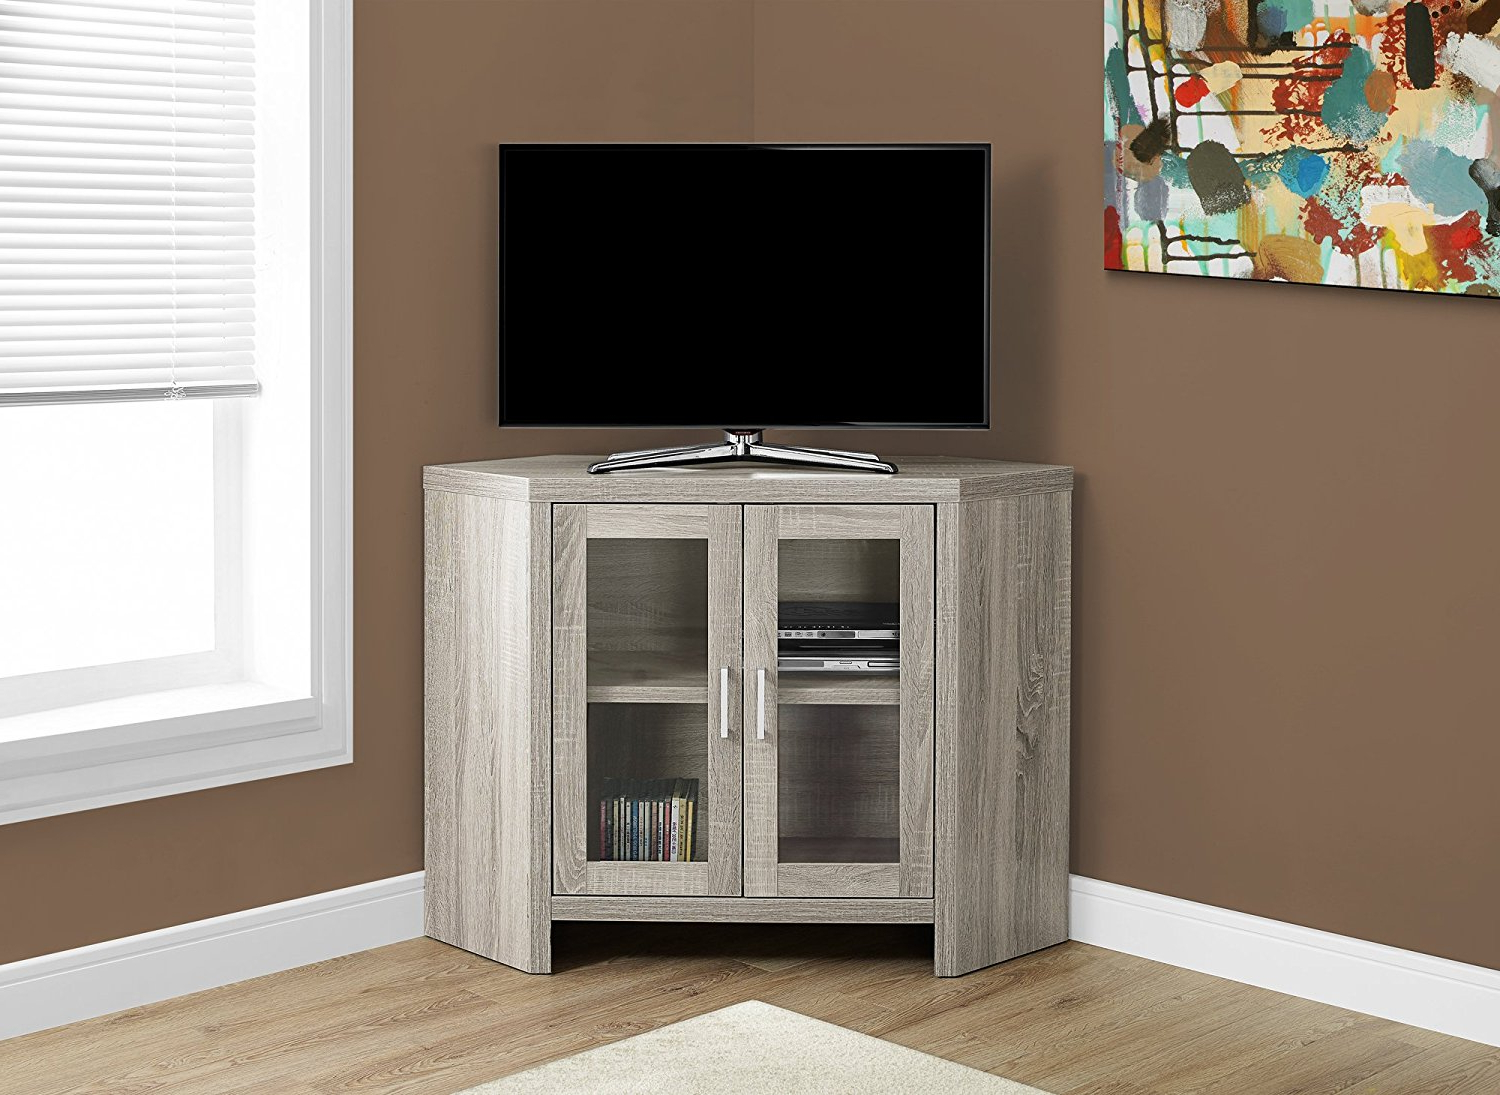 Preferred Low Corner Tv Cabinets With Regard To 25 Perfectly Small Corner Cabinet Ideas For 2019 (Kitchen, Tv, Curio (View 14 of 20)